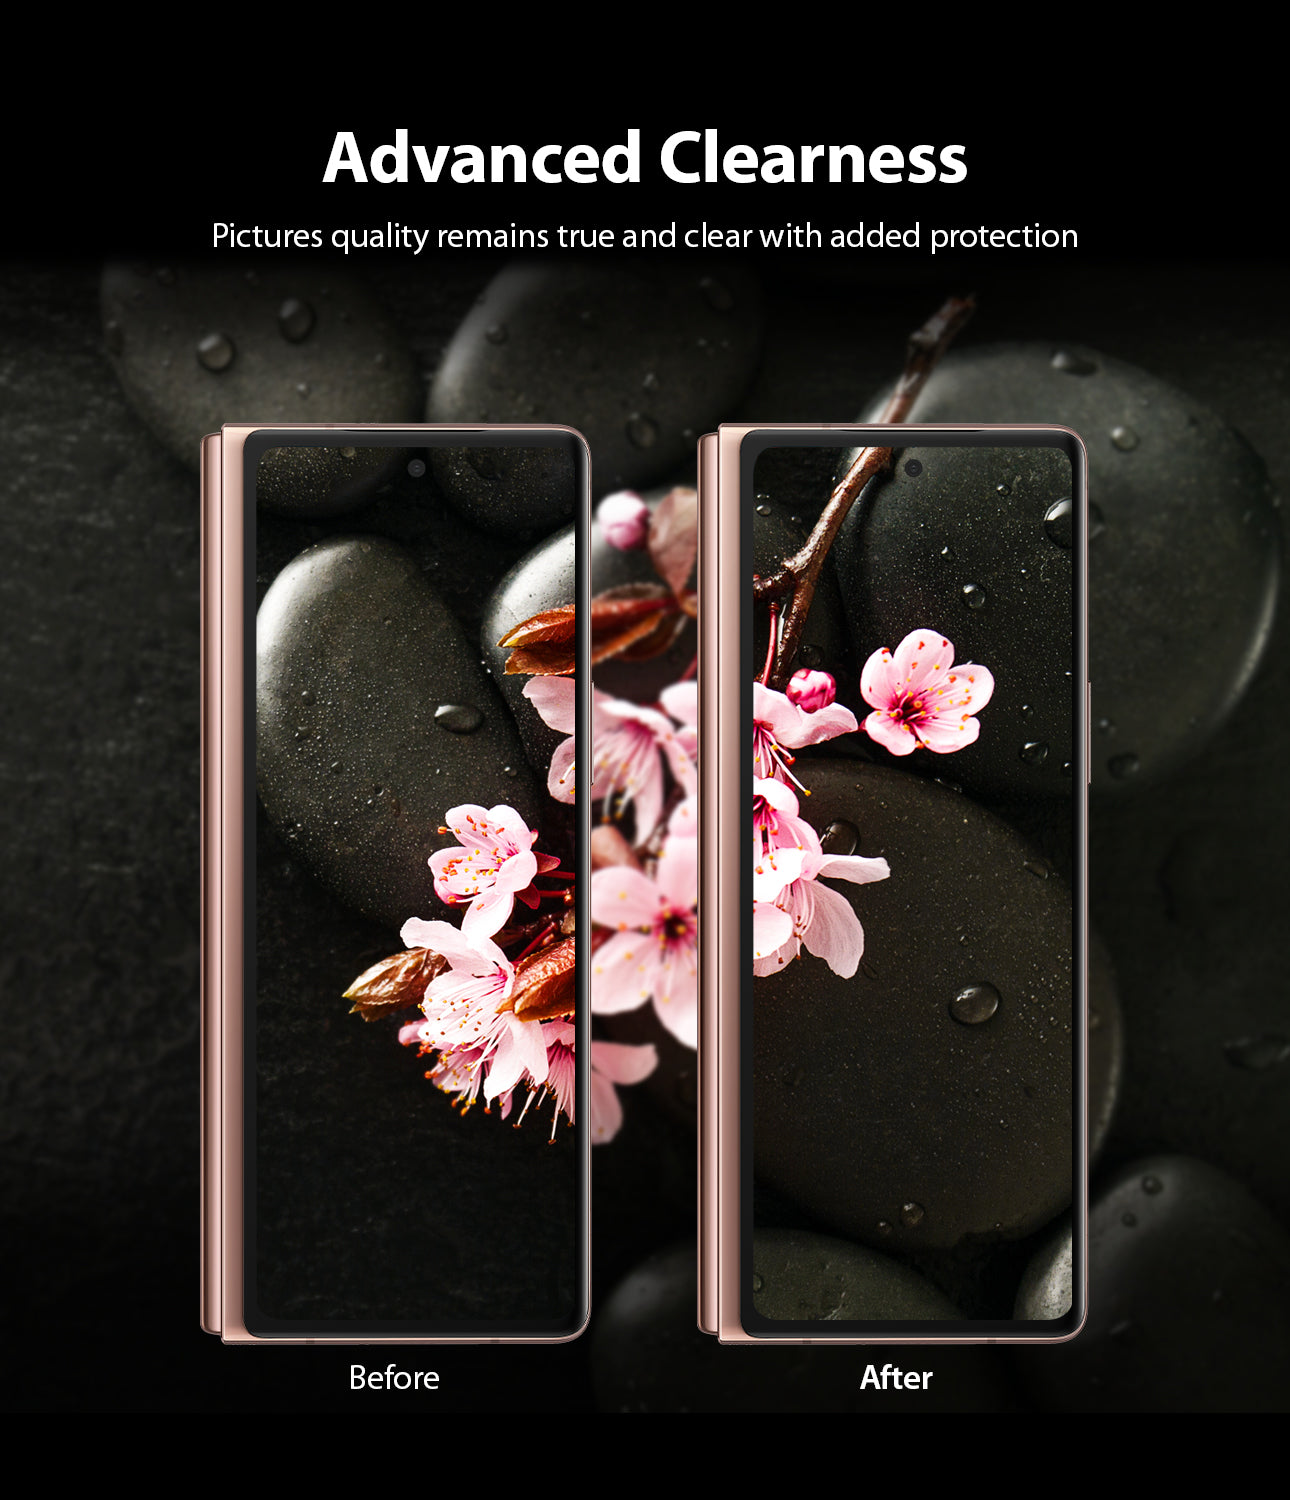 advanced clearness